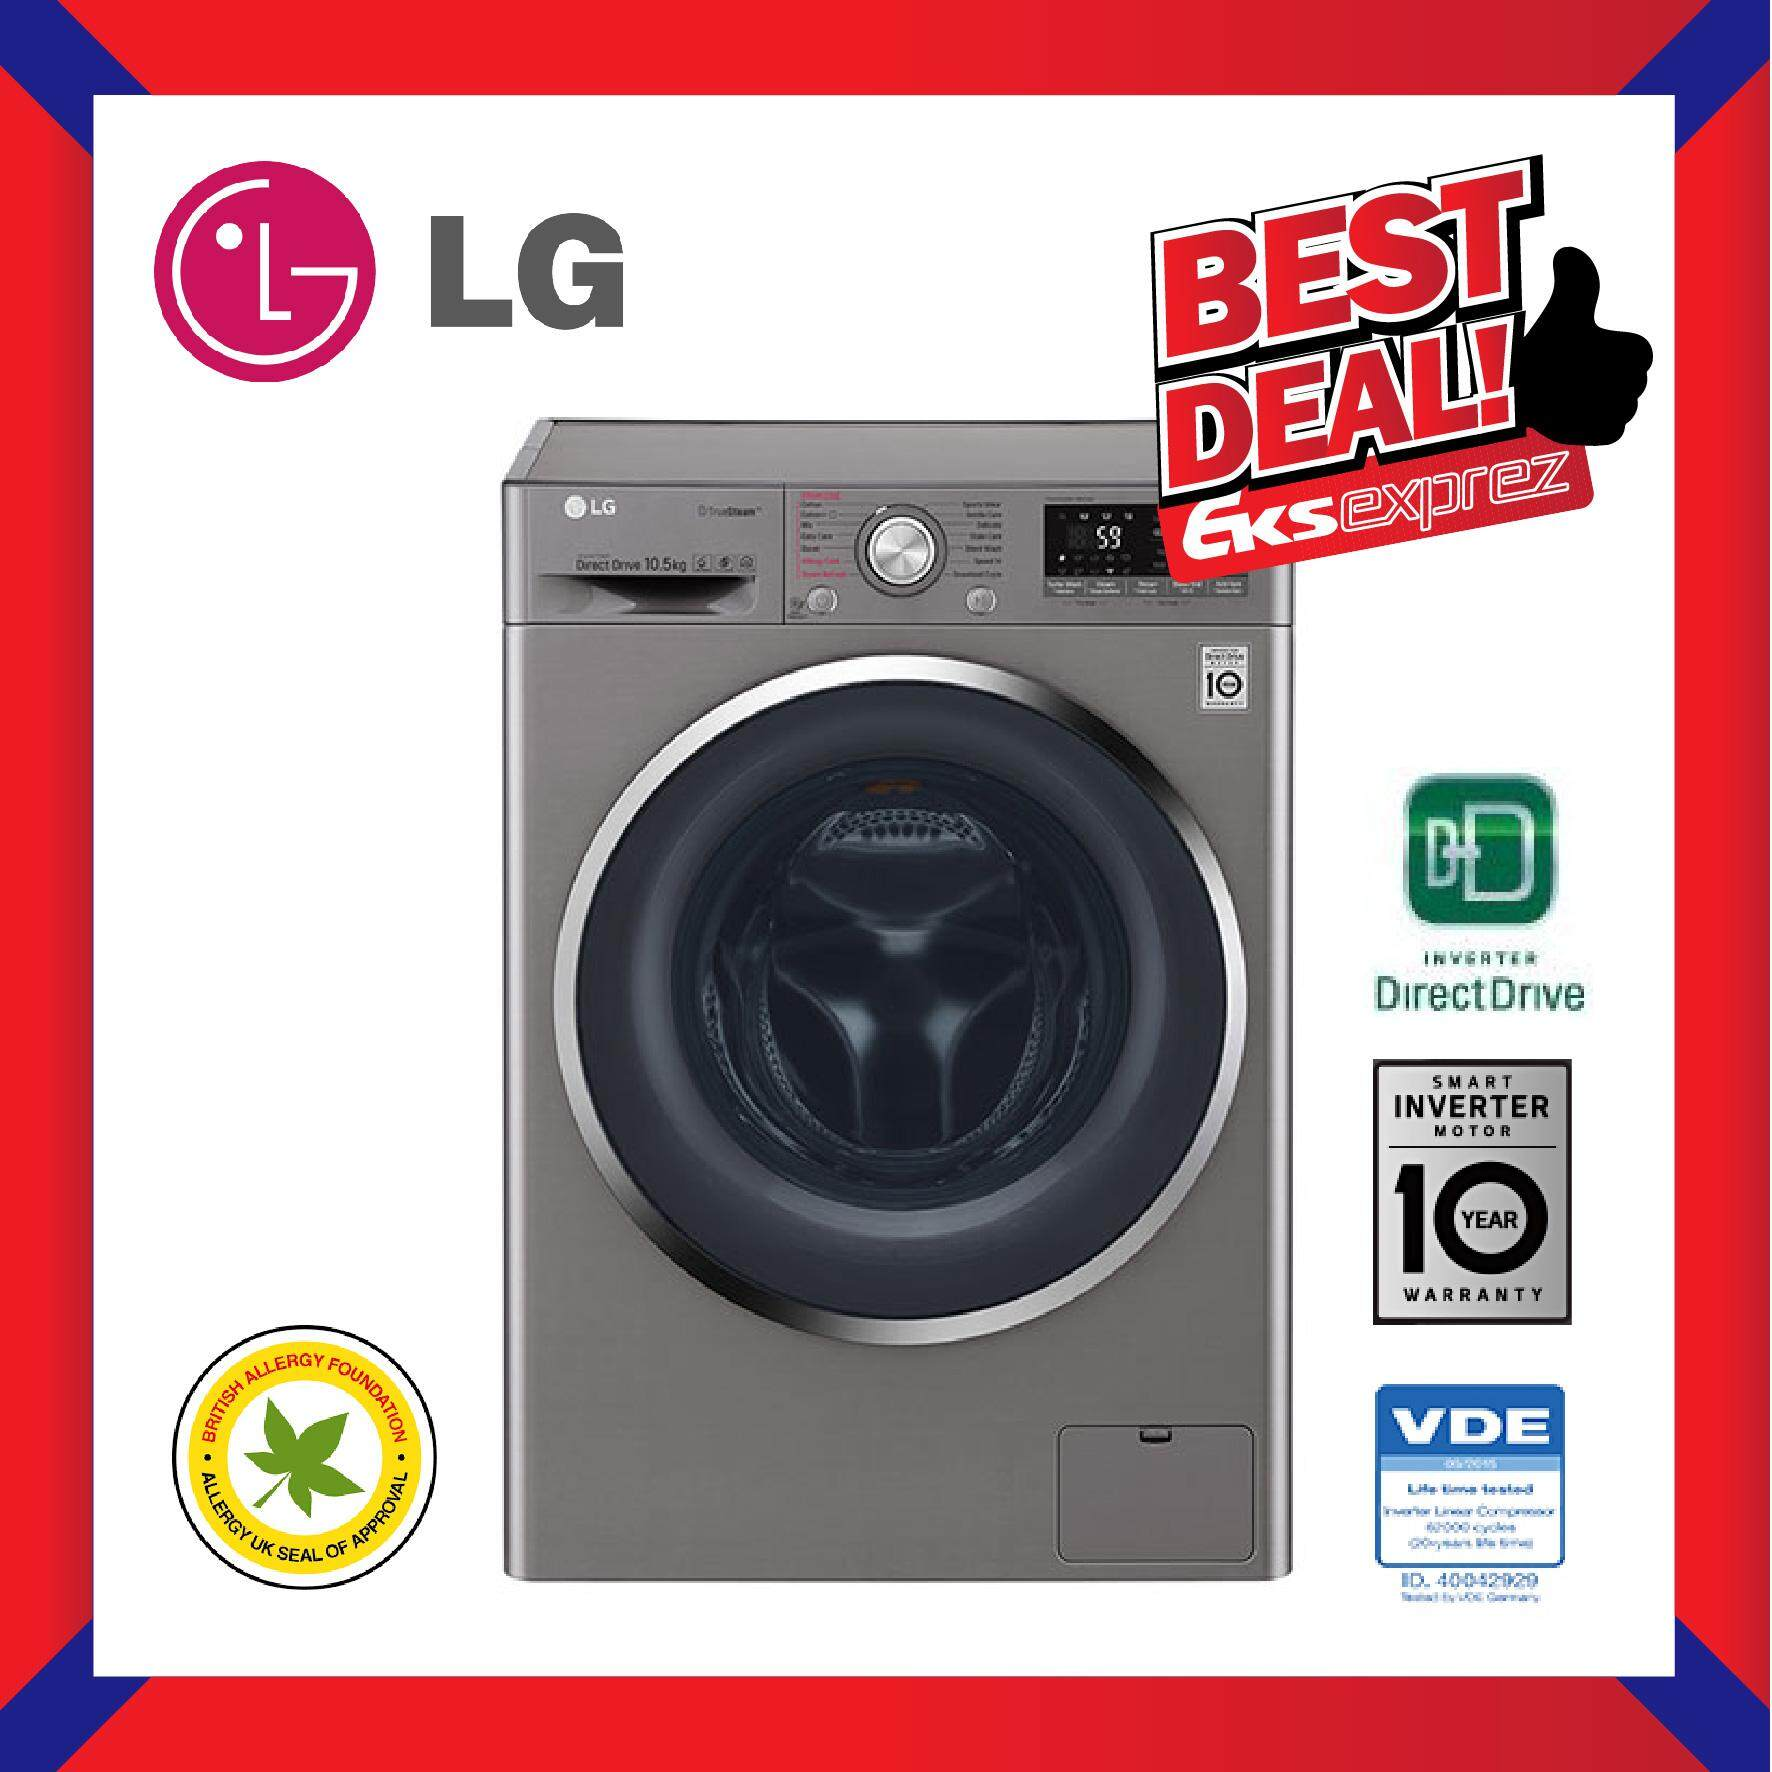 LG FC1450S2E 10.5KG Washing Machine with 6 Motion Direct Drive and TrueSteam™